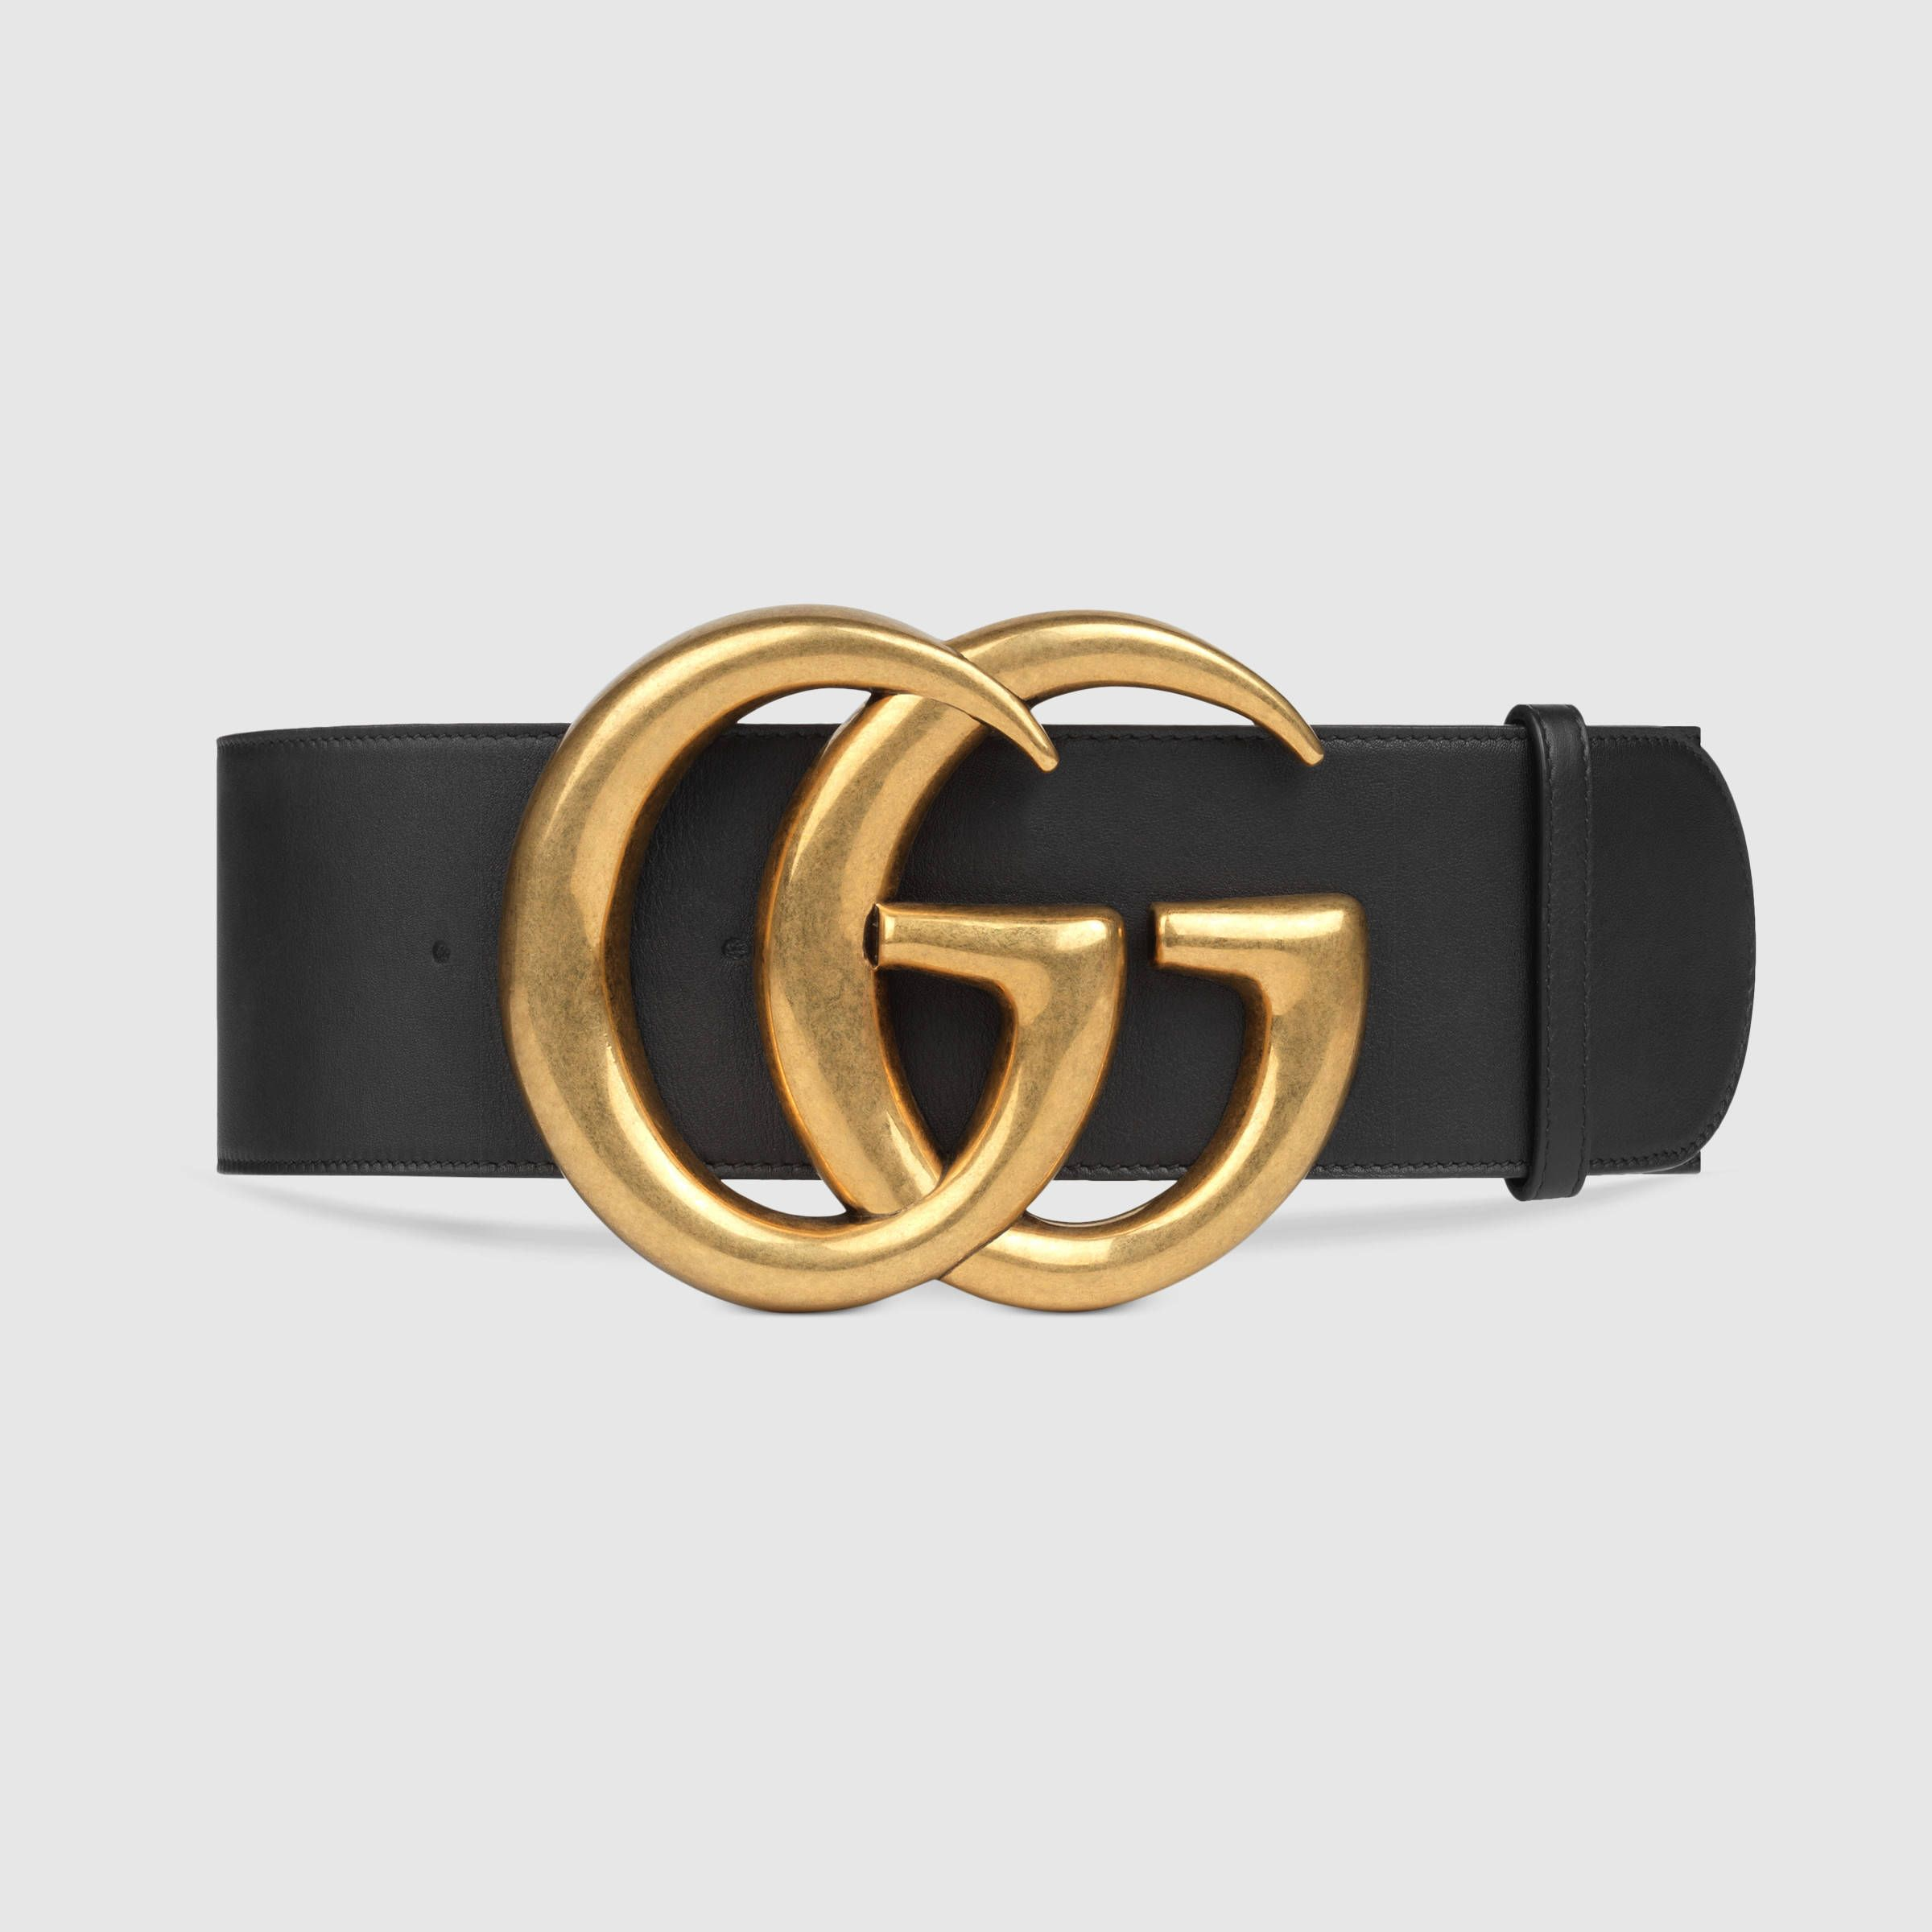 66130ad8cfe Wide leather belt with Double G